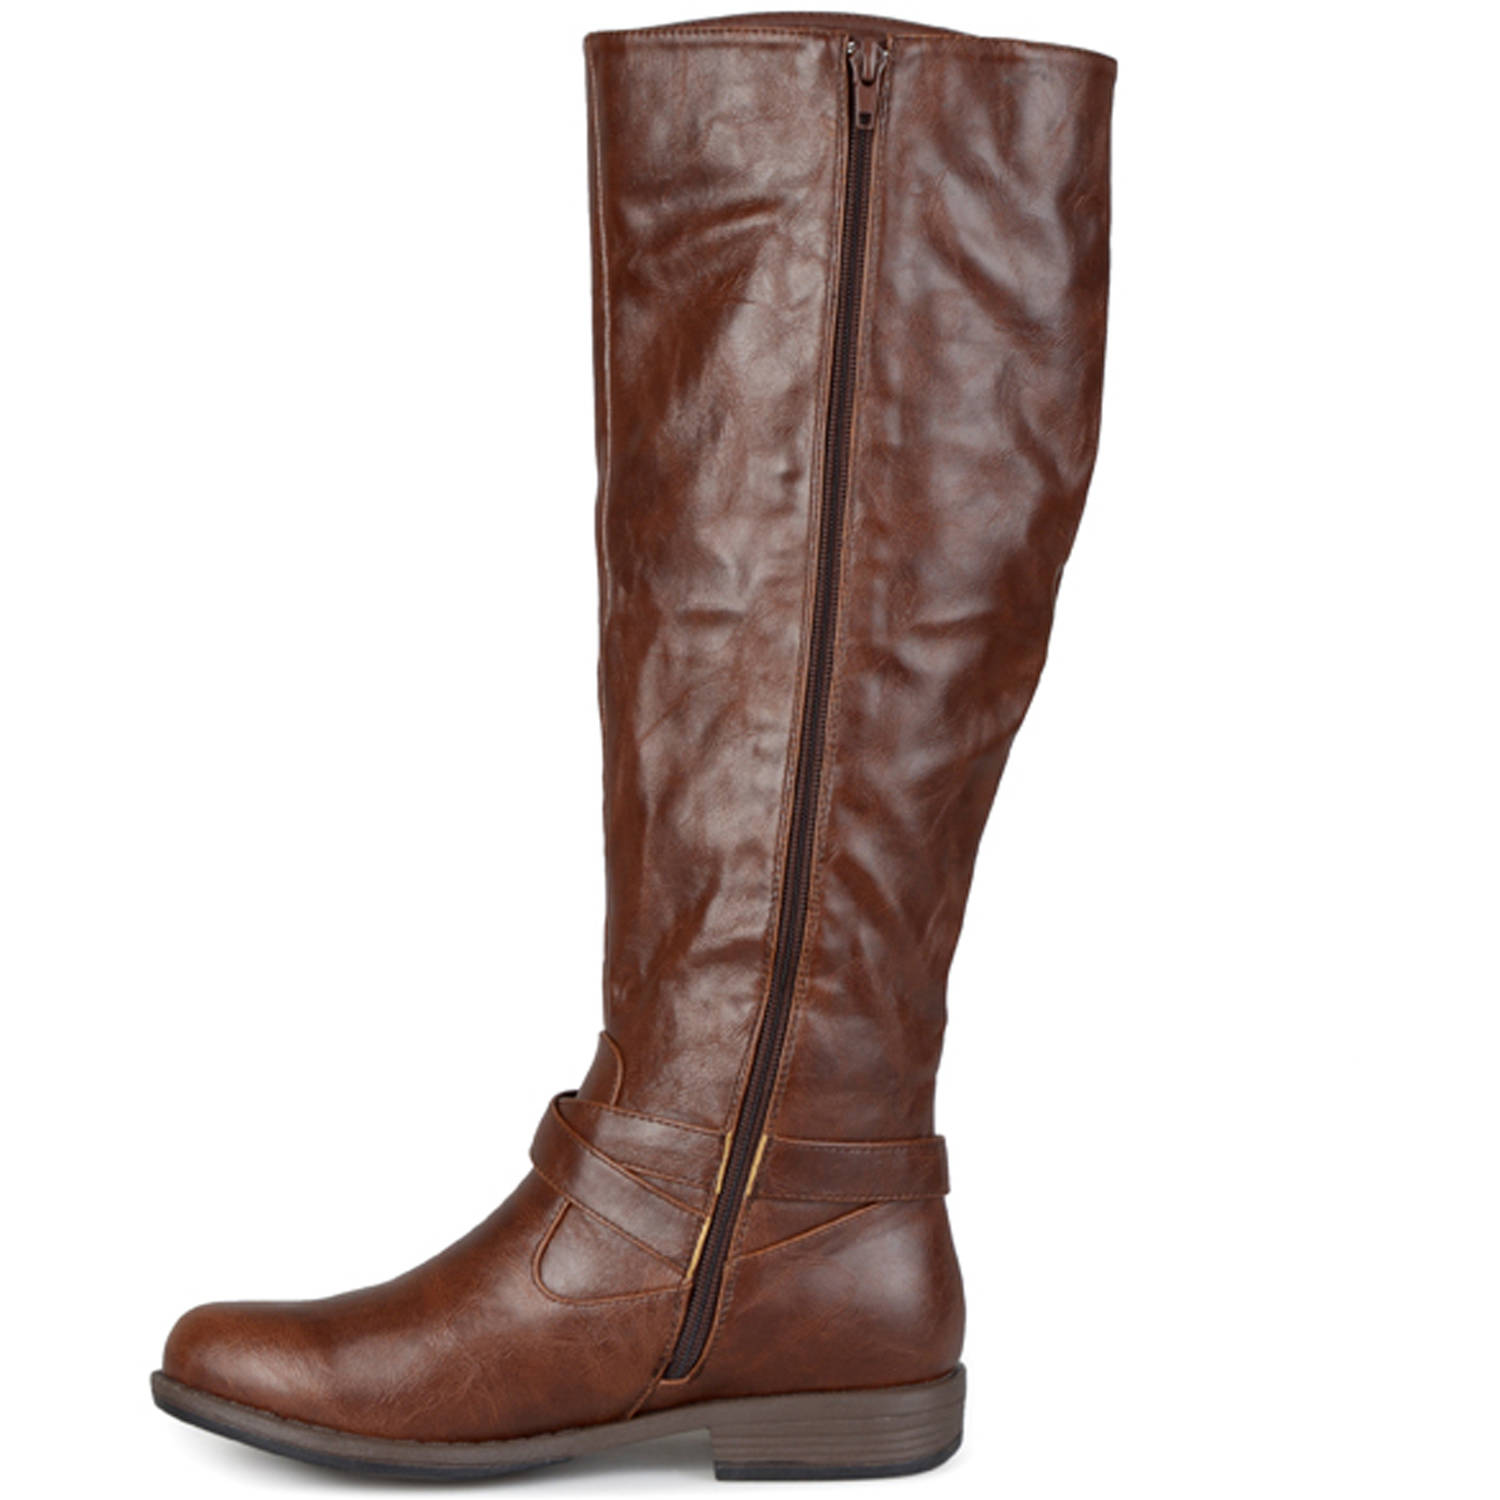 Brinley Co. Women's Round Toe Buckle Detail Boots Boots Boots d7c617